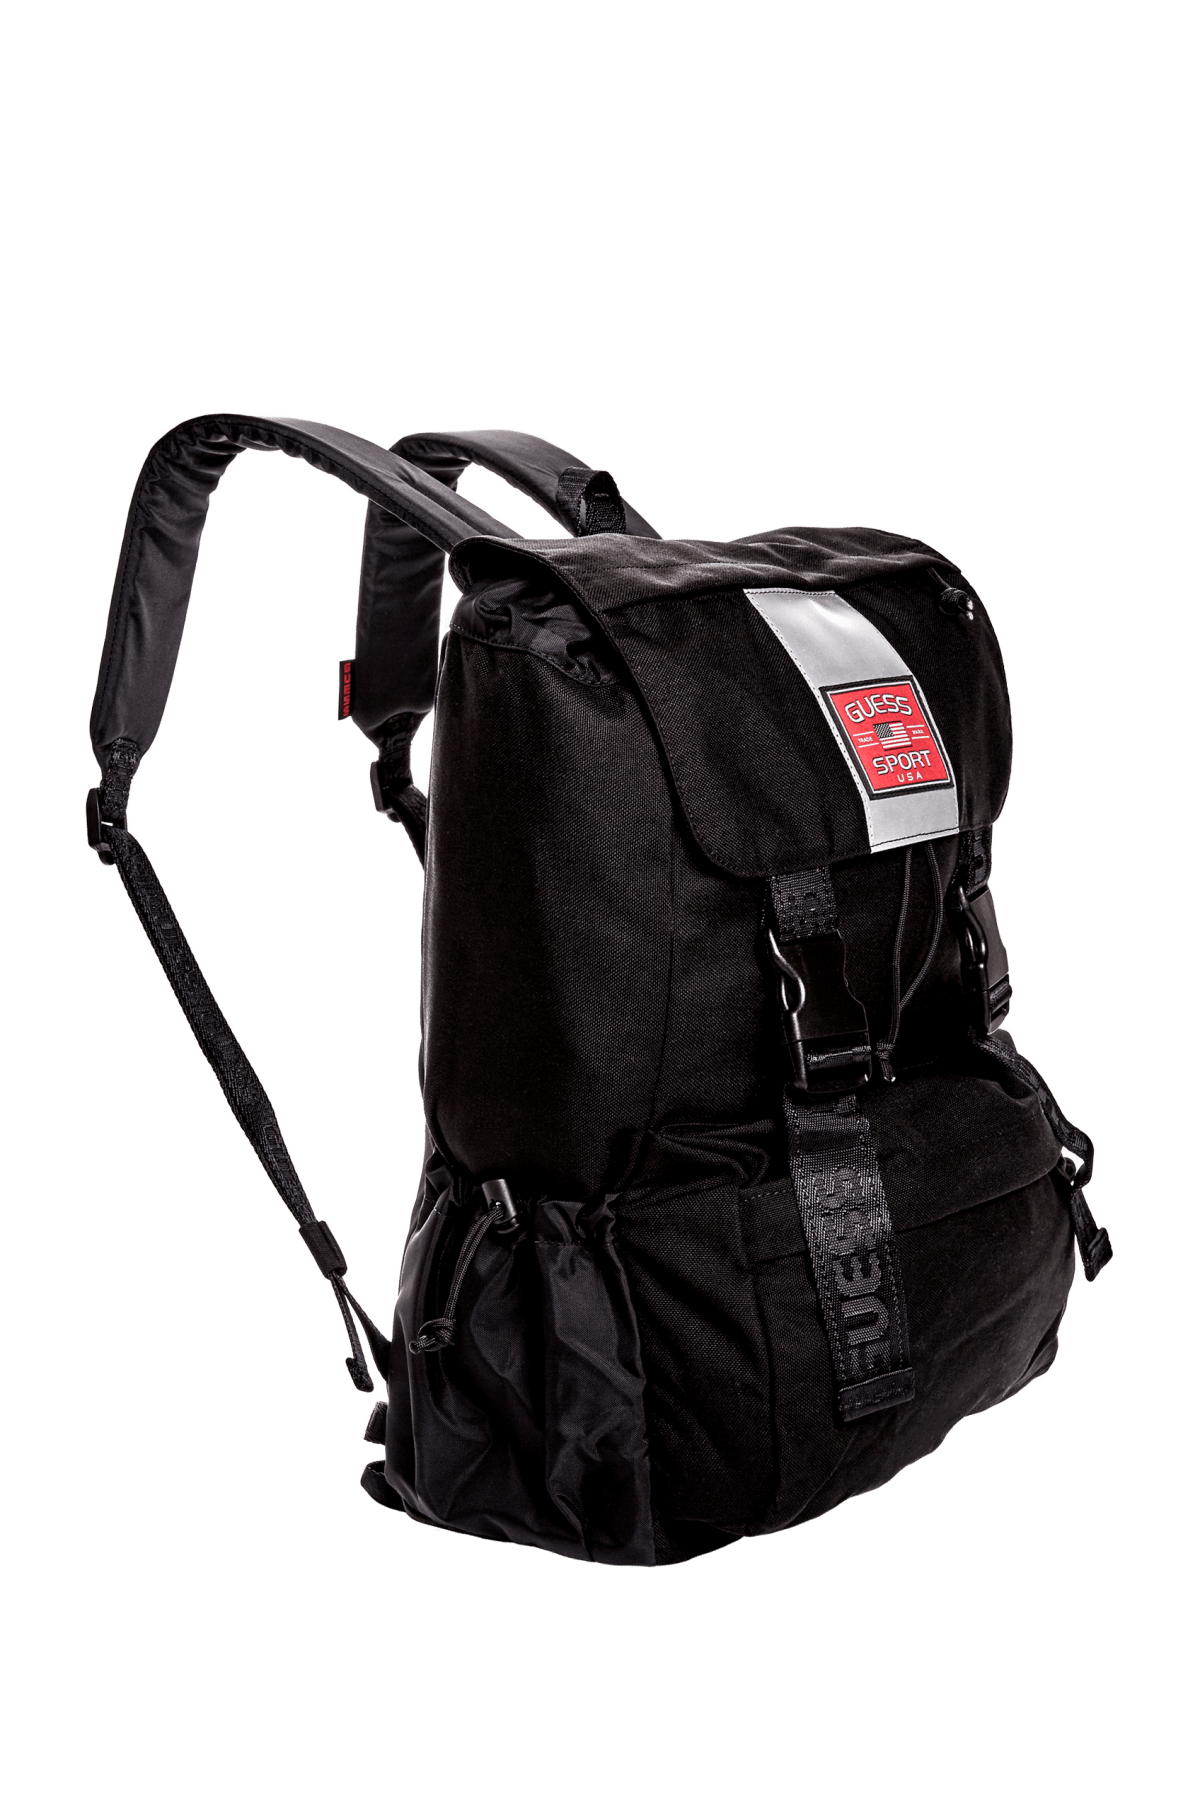 Details about Guess Jeans X Sean Wotherspoon Farmers Market Exclusive Black Backpack